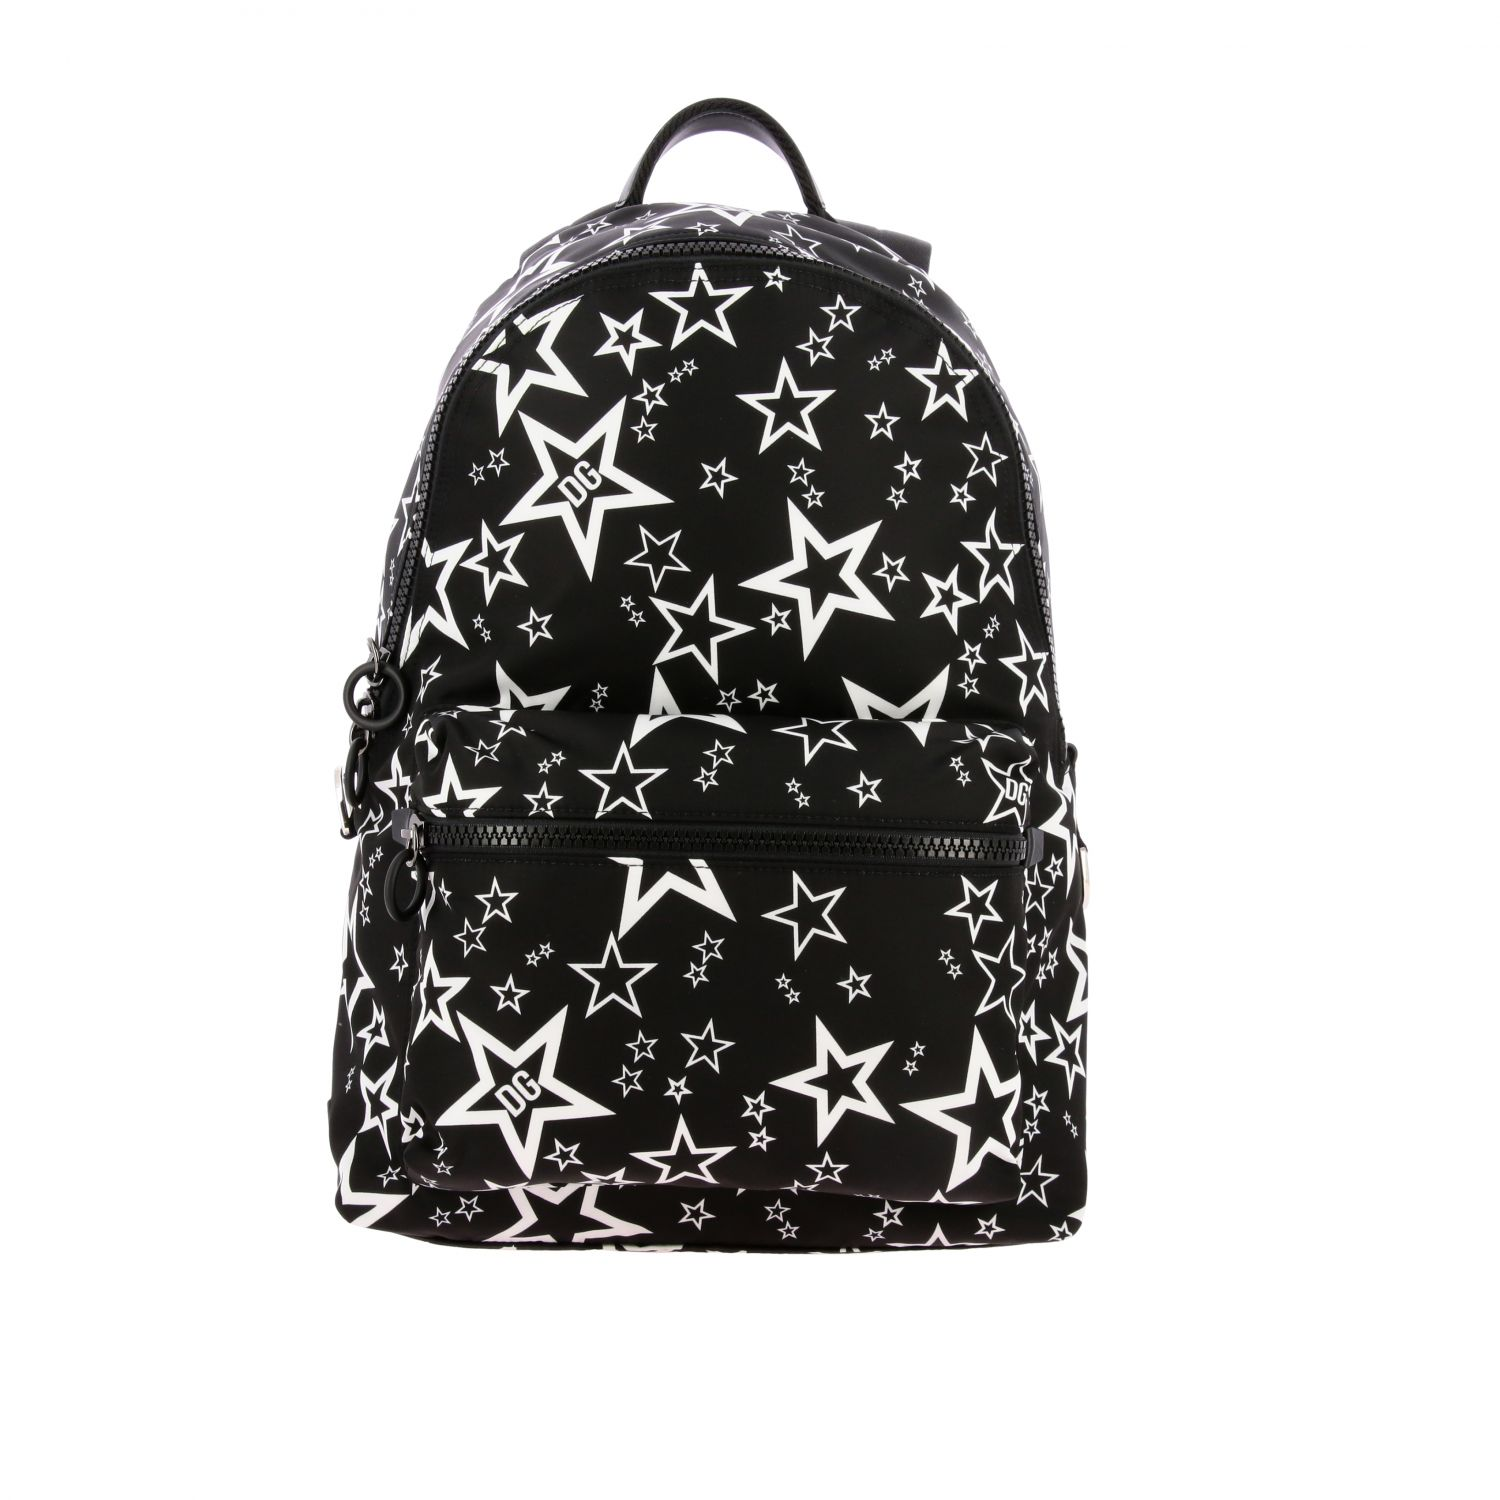 Backpack Dolce & Gabbana: Dolce & Gabbana canvas backpack with all over star print black 1